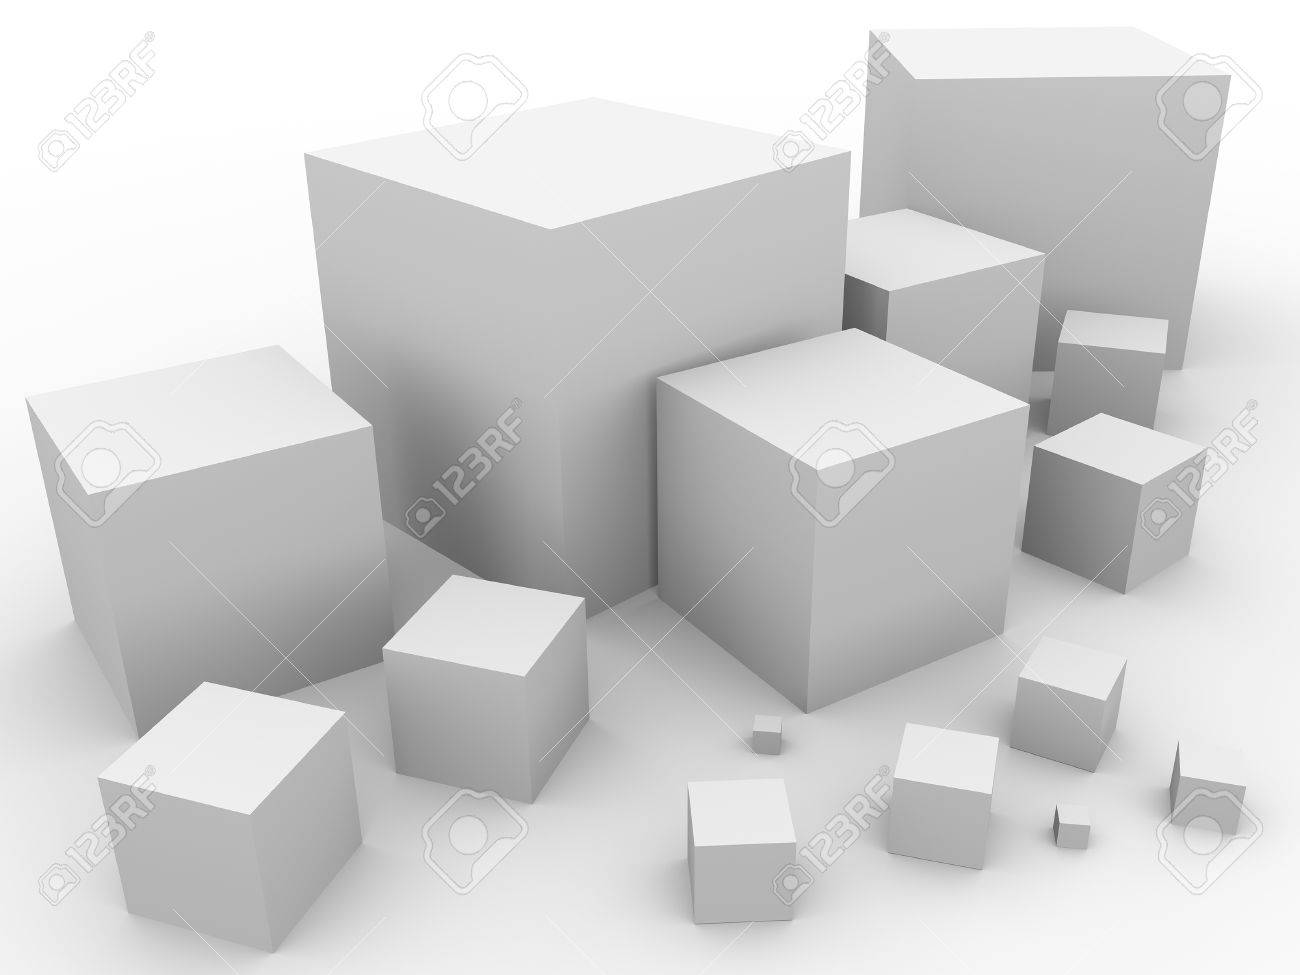 Some cubes with different sizes  Abstract illustration Stock Photo - 16975903